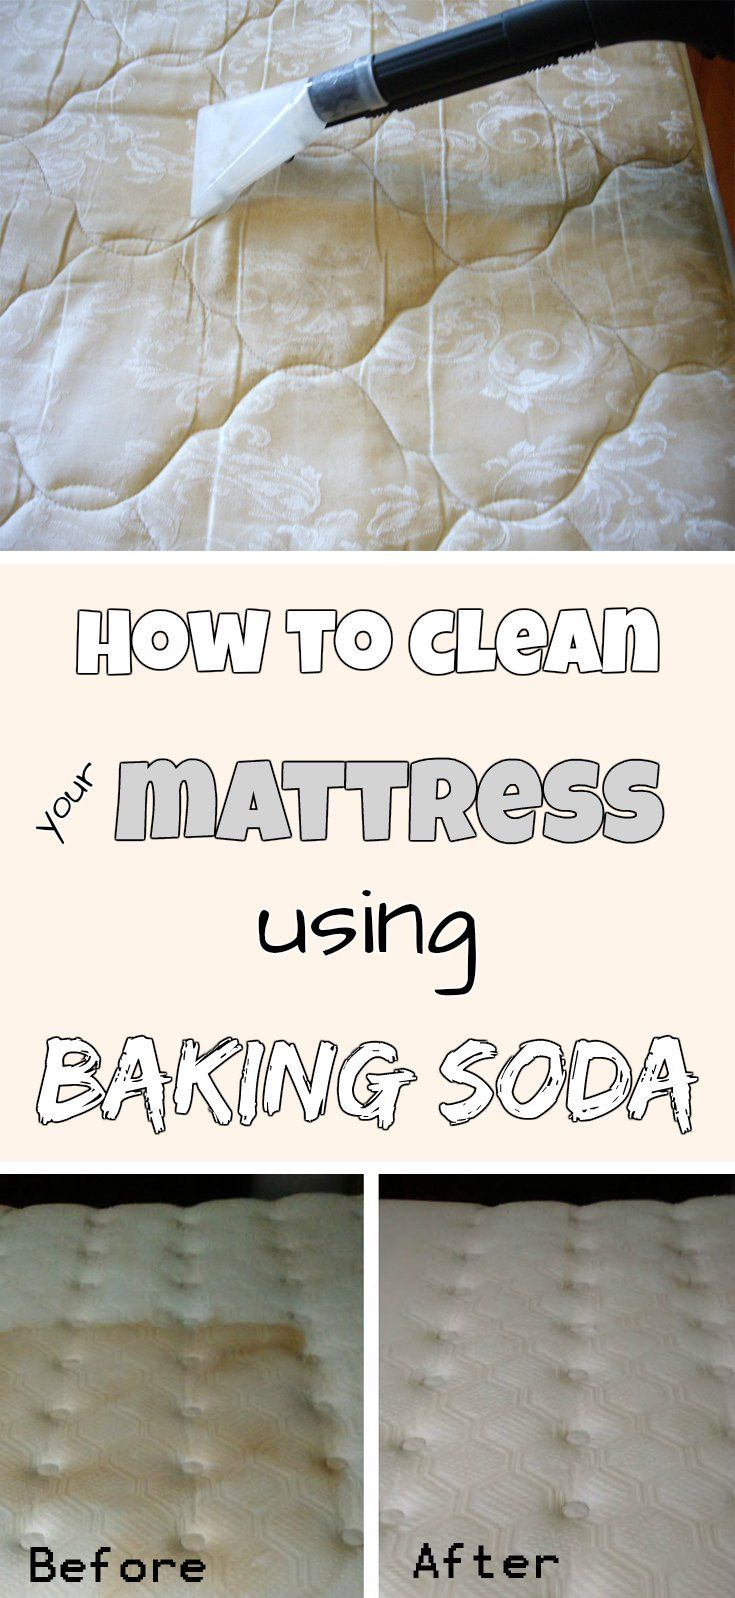 How to clean your mattress using baking soda - myCleaningSolutions.com